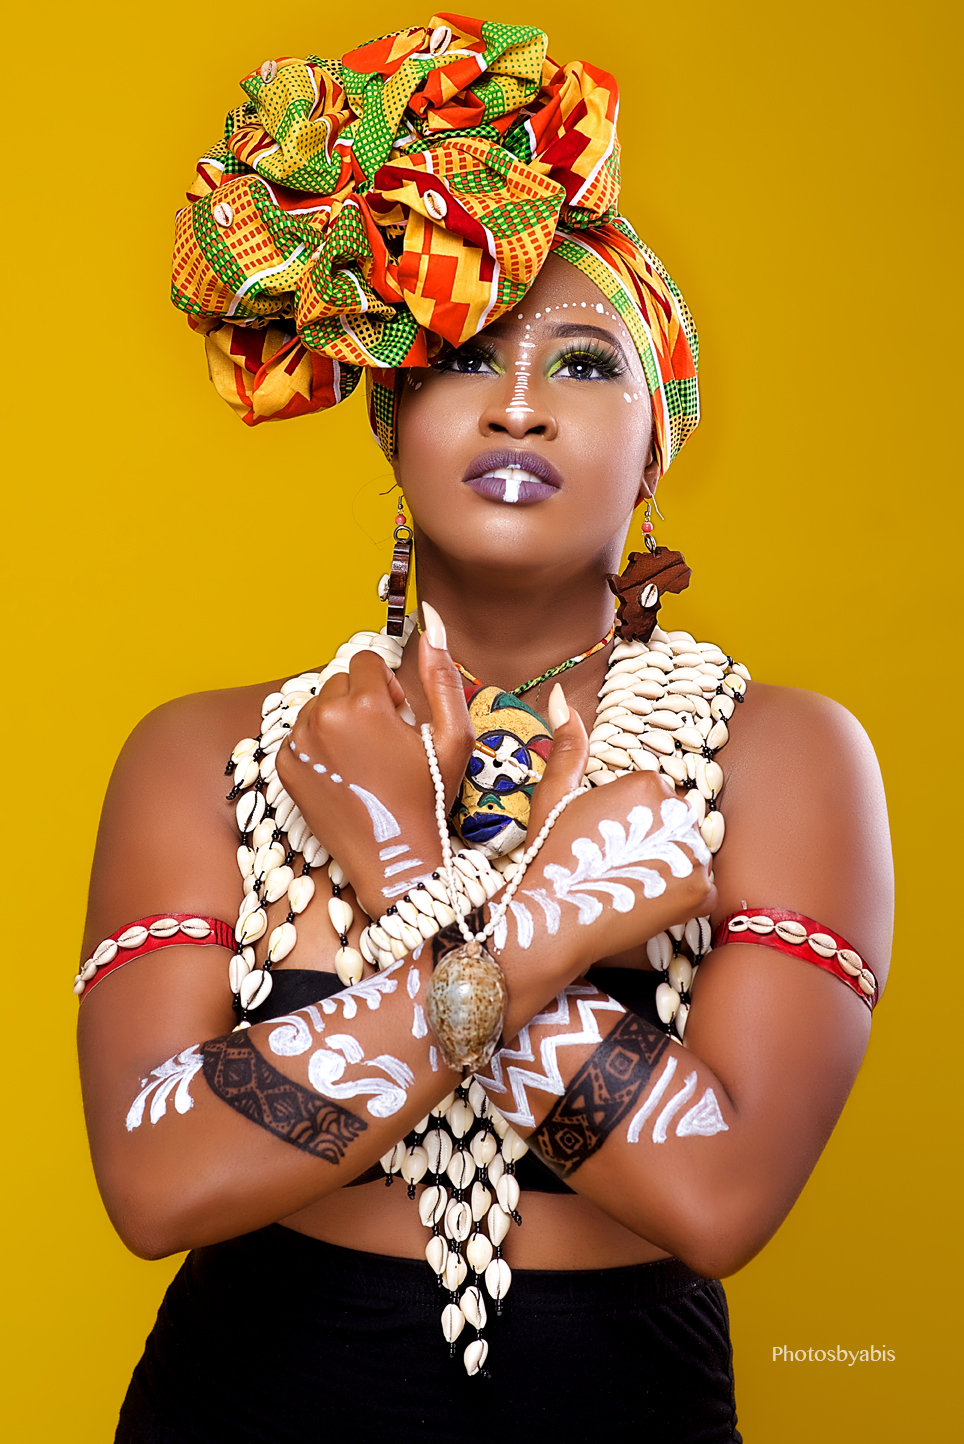 Check Out This African Tribal Beauty By